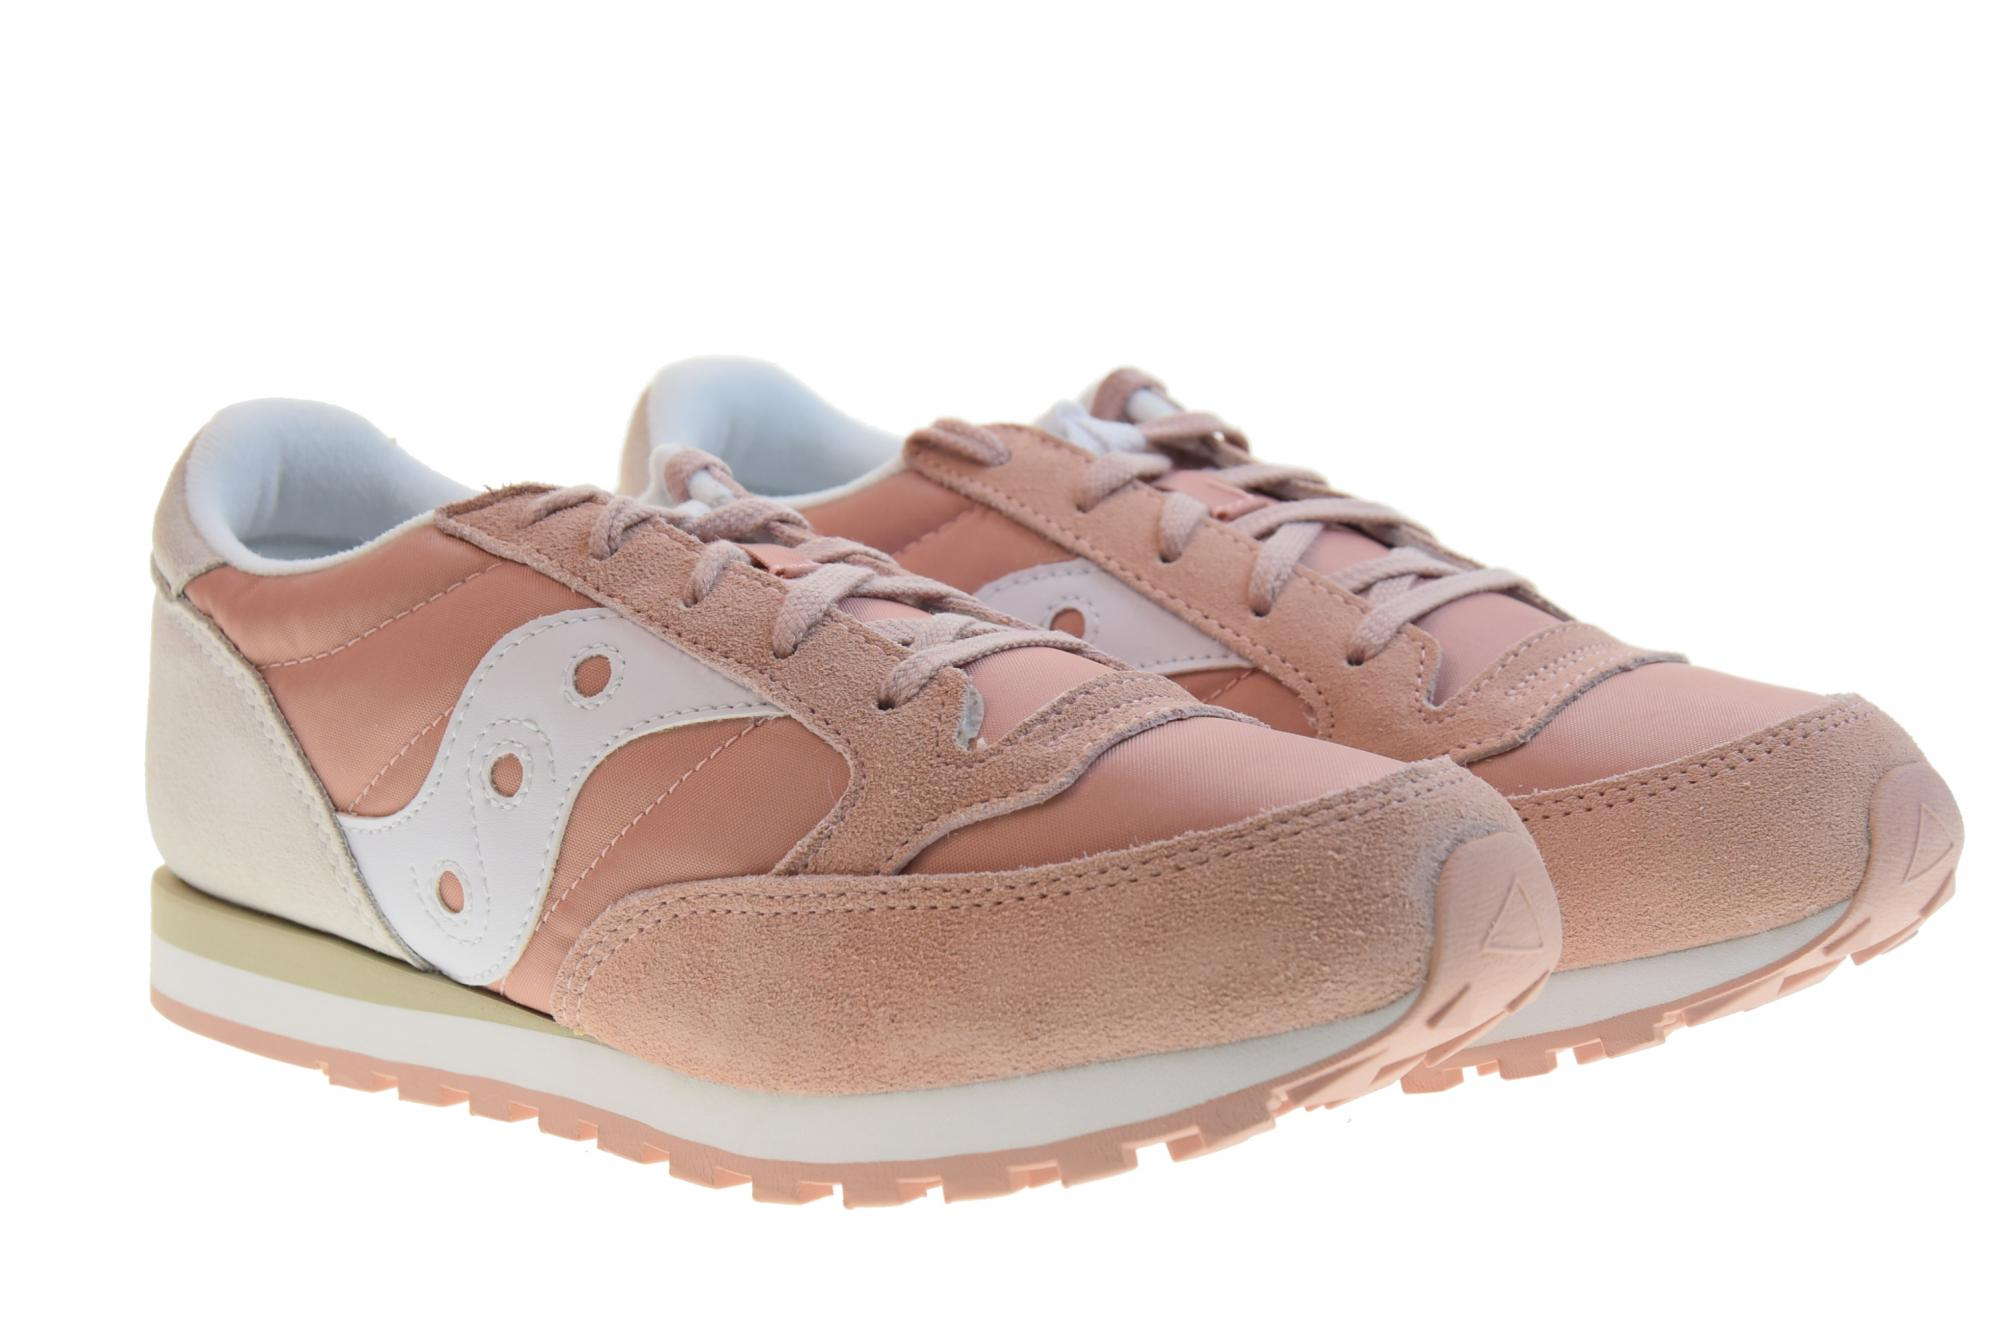 939598527a Details about Saucony P19u shoes girl sneakers low SK161004 JAZZ ORIGINAL